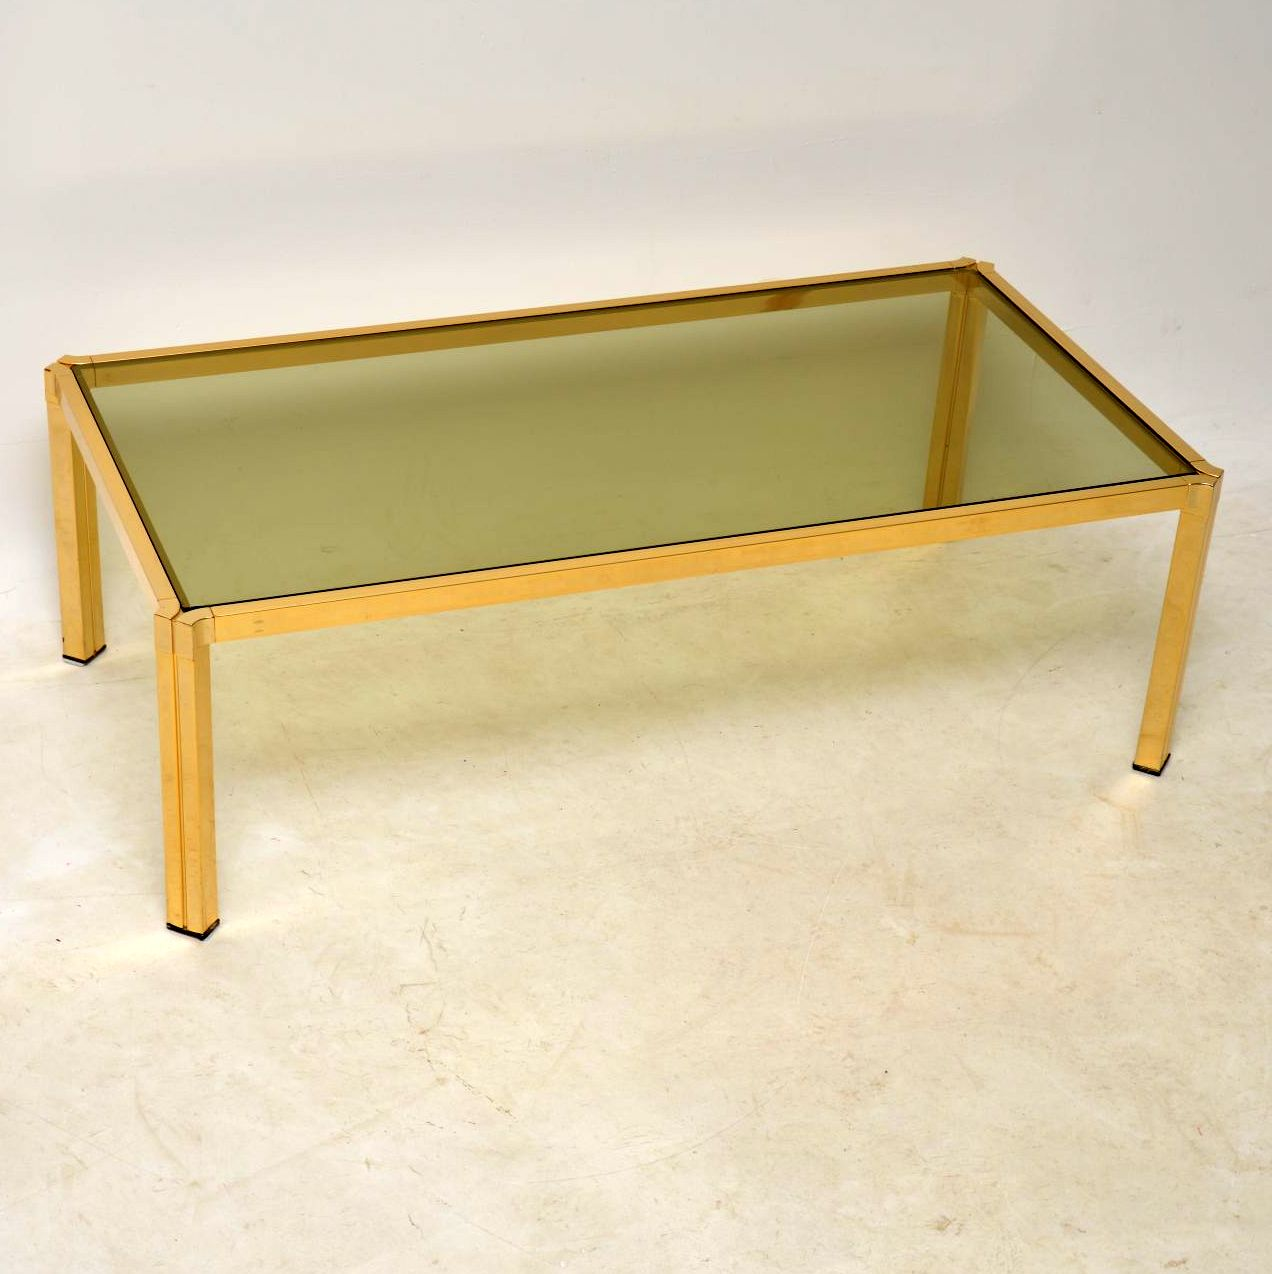 1970 S Vintage Brass Coffee Table